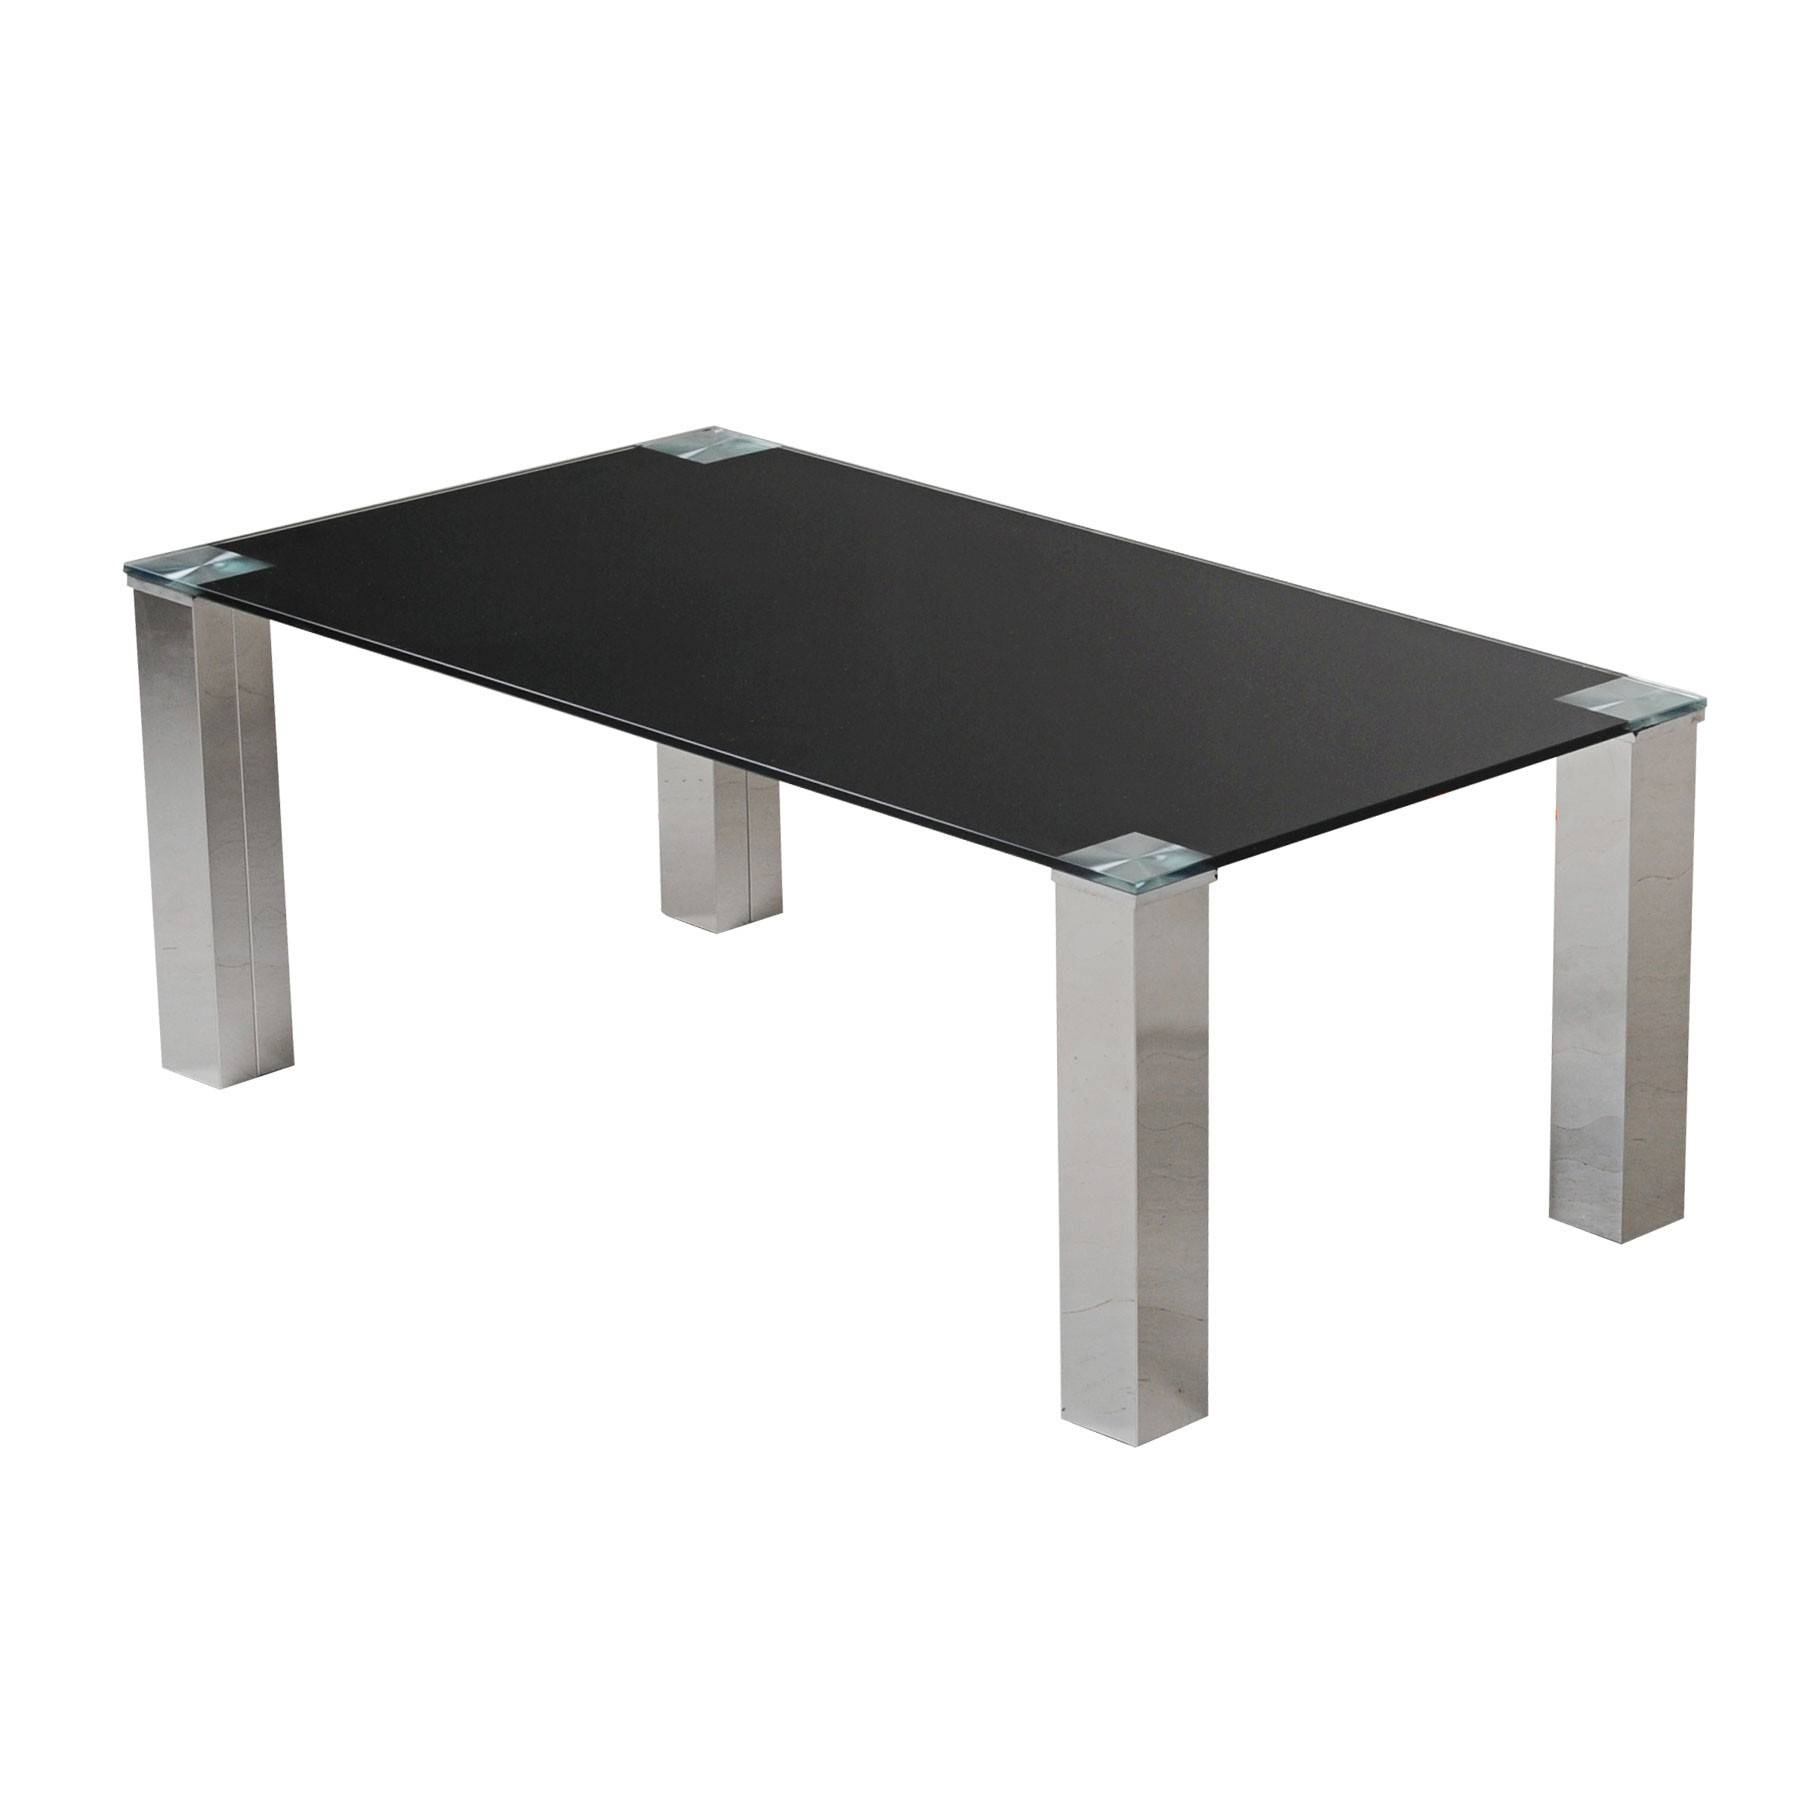 Black Glass Coffee Table regarding Dark Glass Coffee Tables (Image 2 of 30)